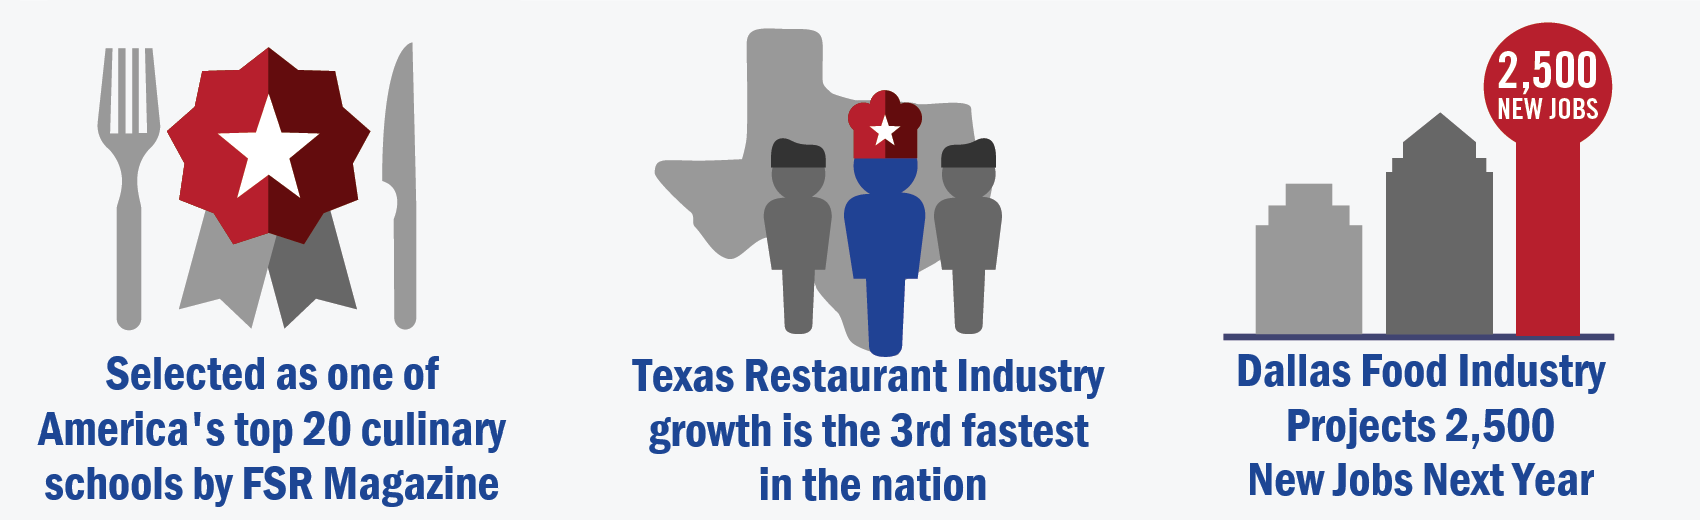 Selected as one of America's top 20 culinary schools by FSR Magazine; Texas Restaurant Industry growth is the 3rd fastes in the nation